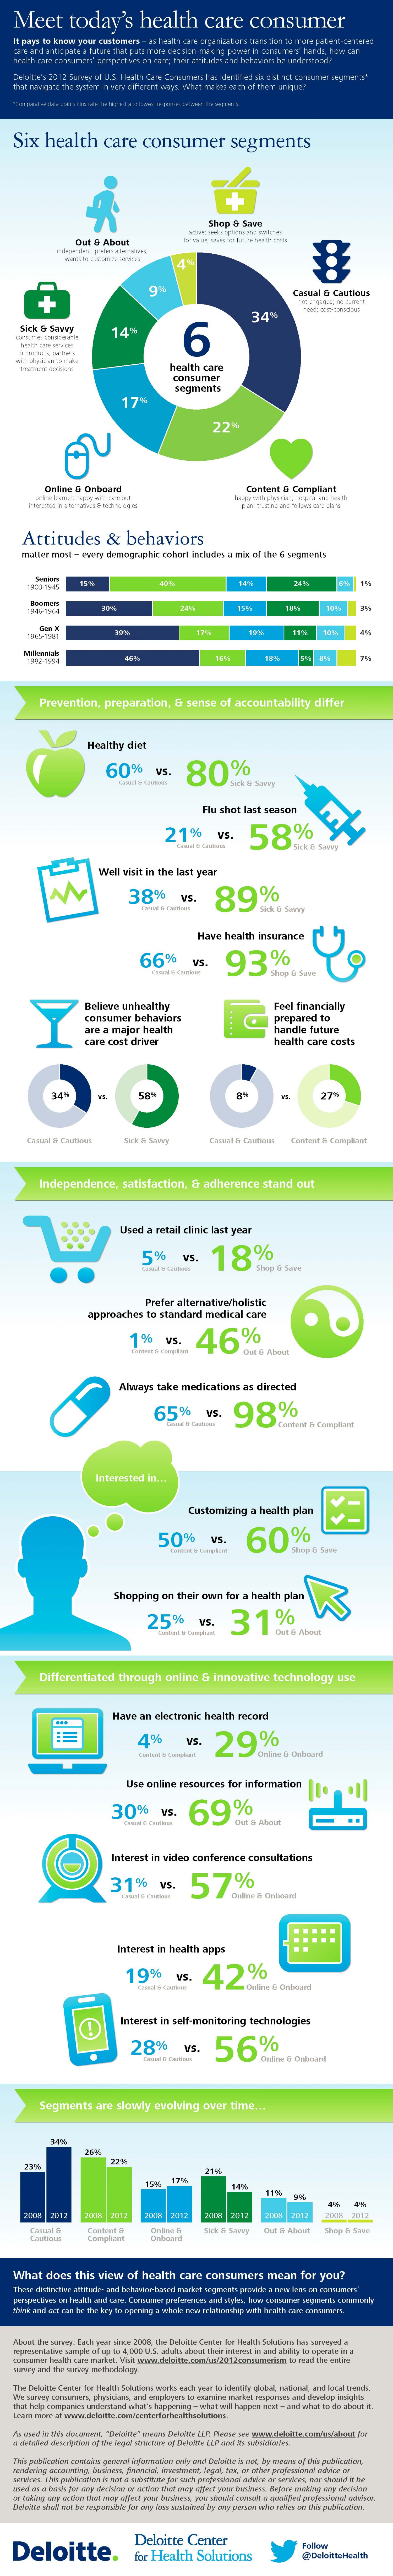 Meet today's health care consumer (INFOGRAPHIC) Infographic